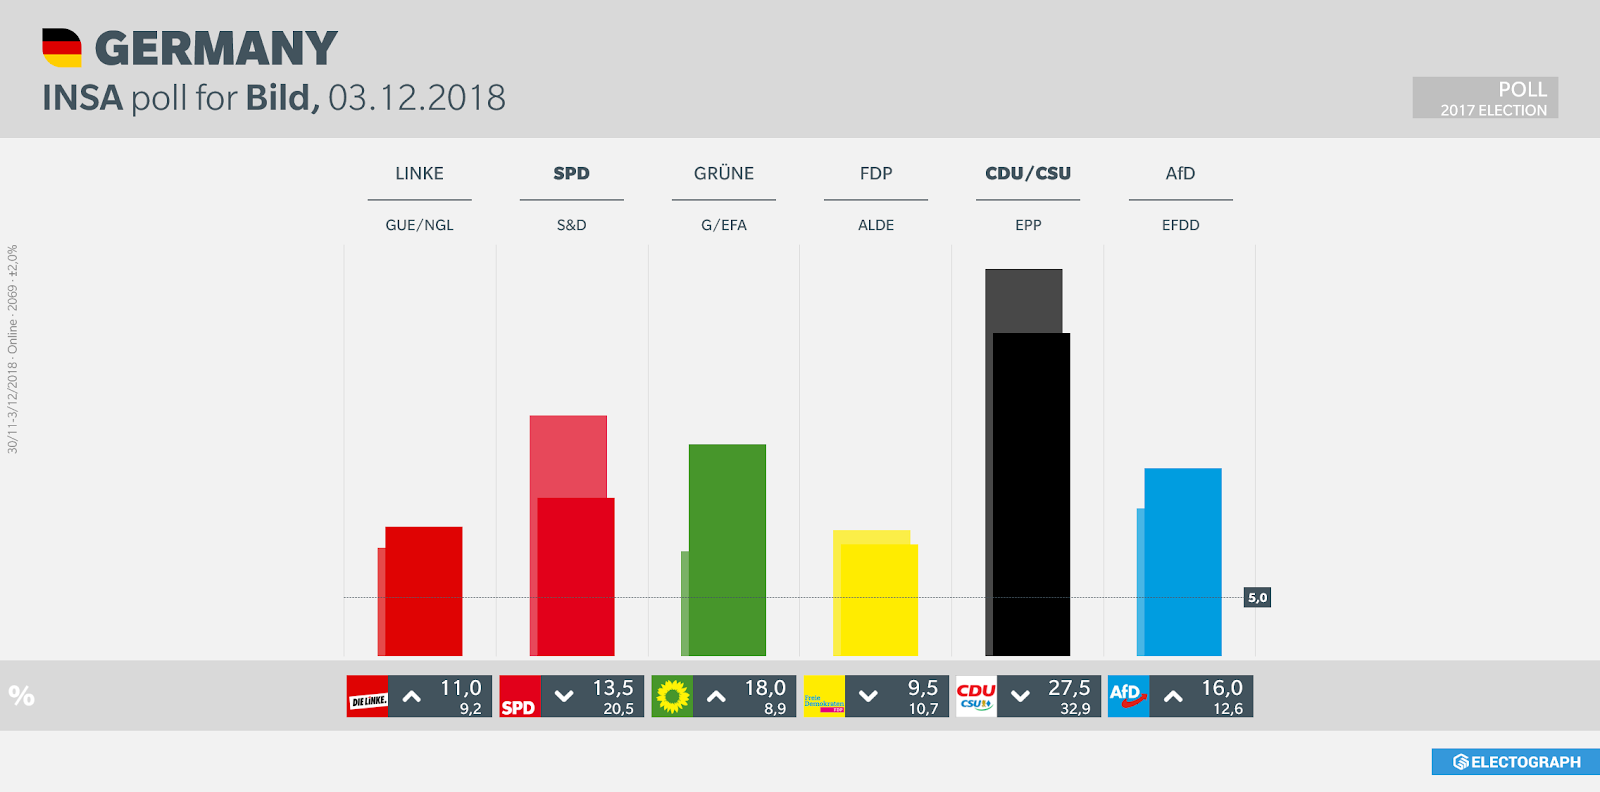 GERMANY: INSA poll chart for Bild, 3 December 2018